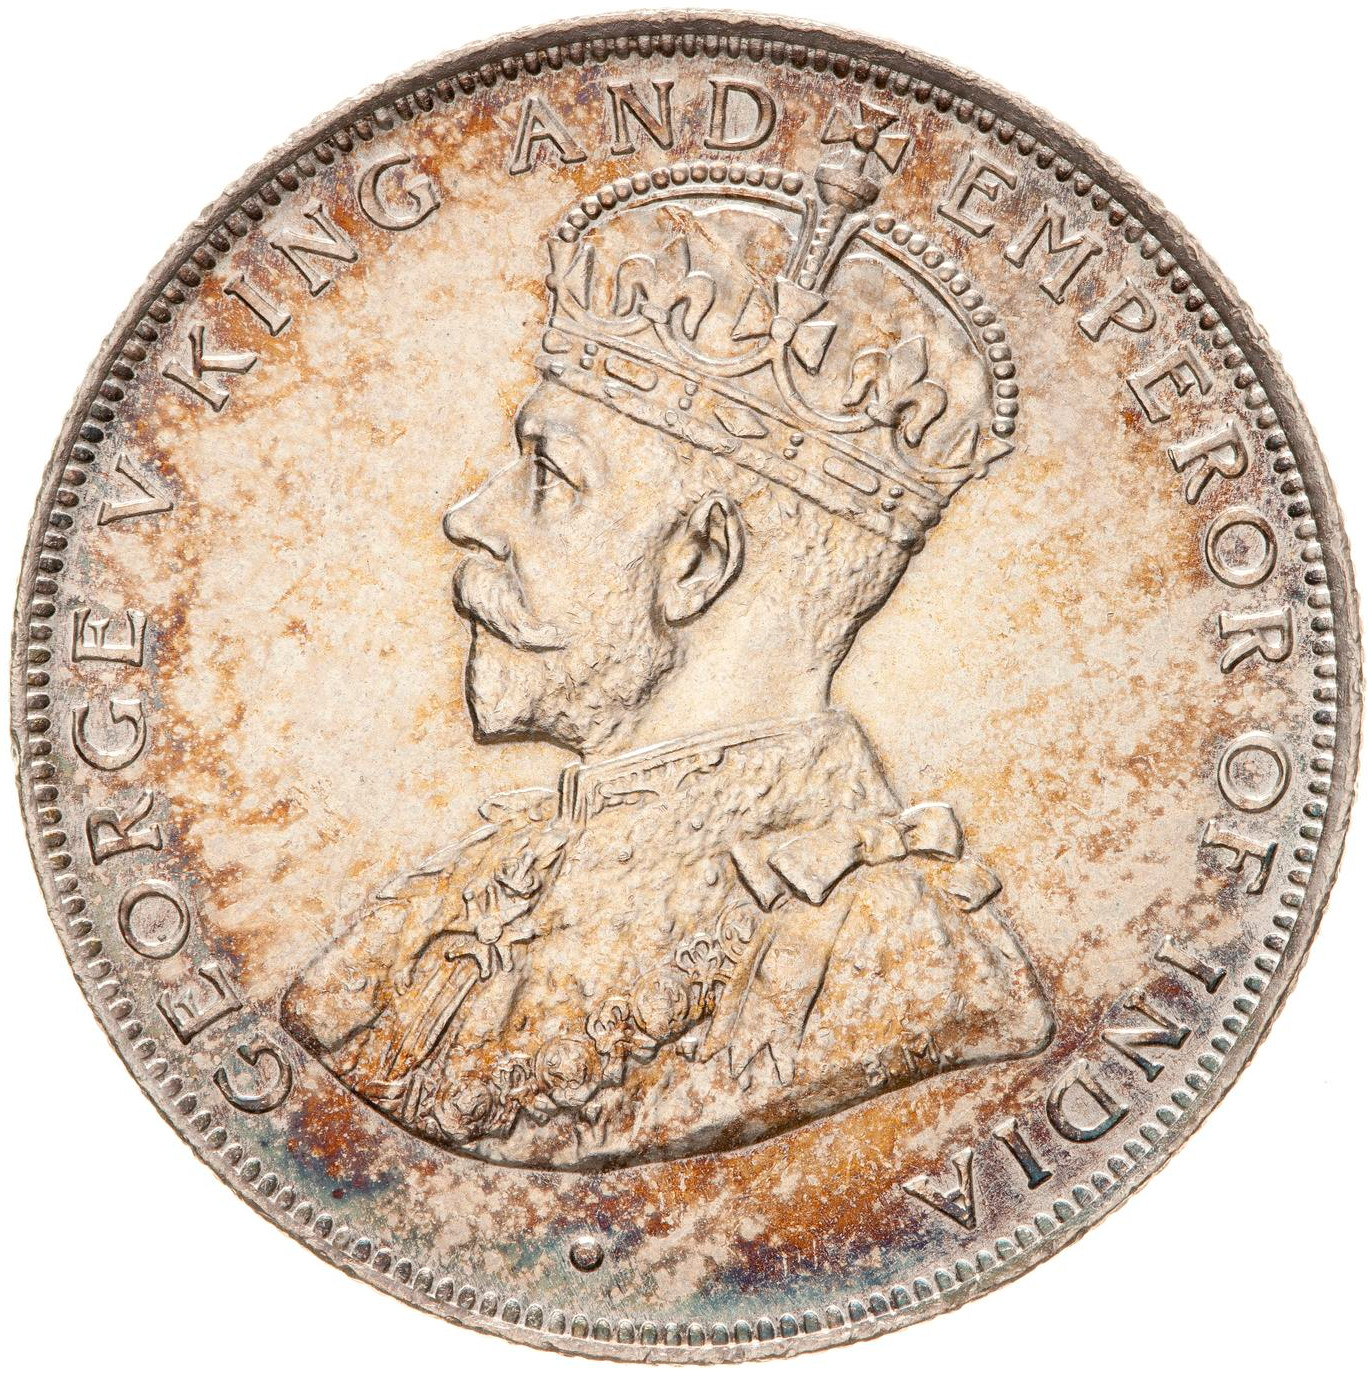 Fifty Cents: Photo Coin - 50 Cents, British Honduras (Belize), 1911